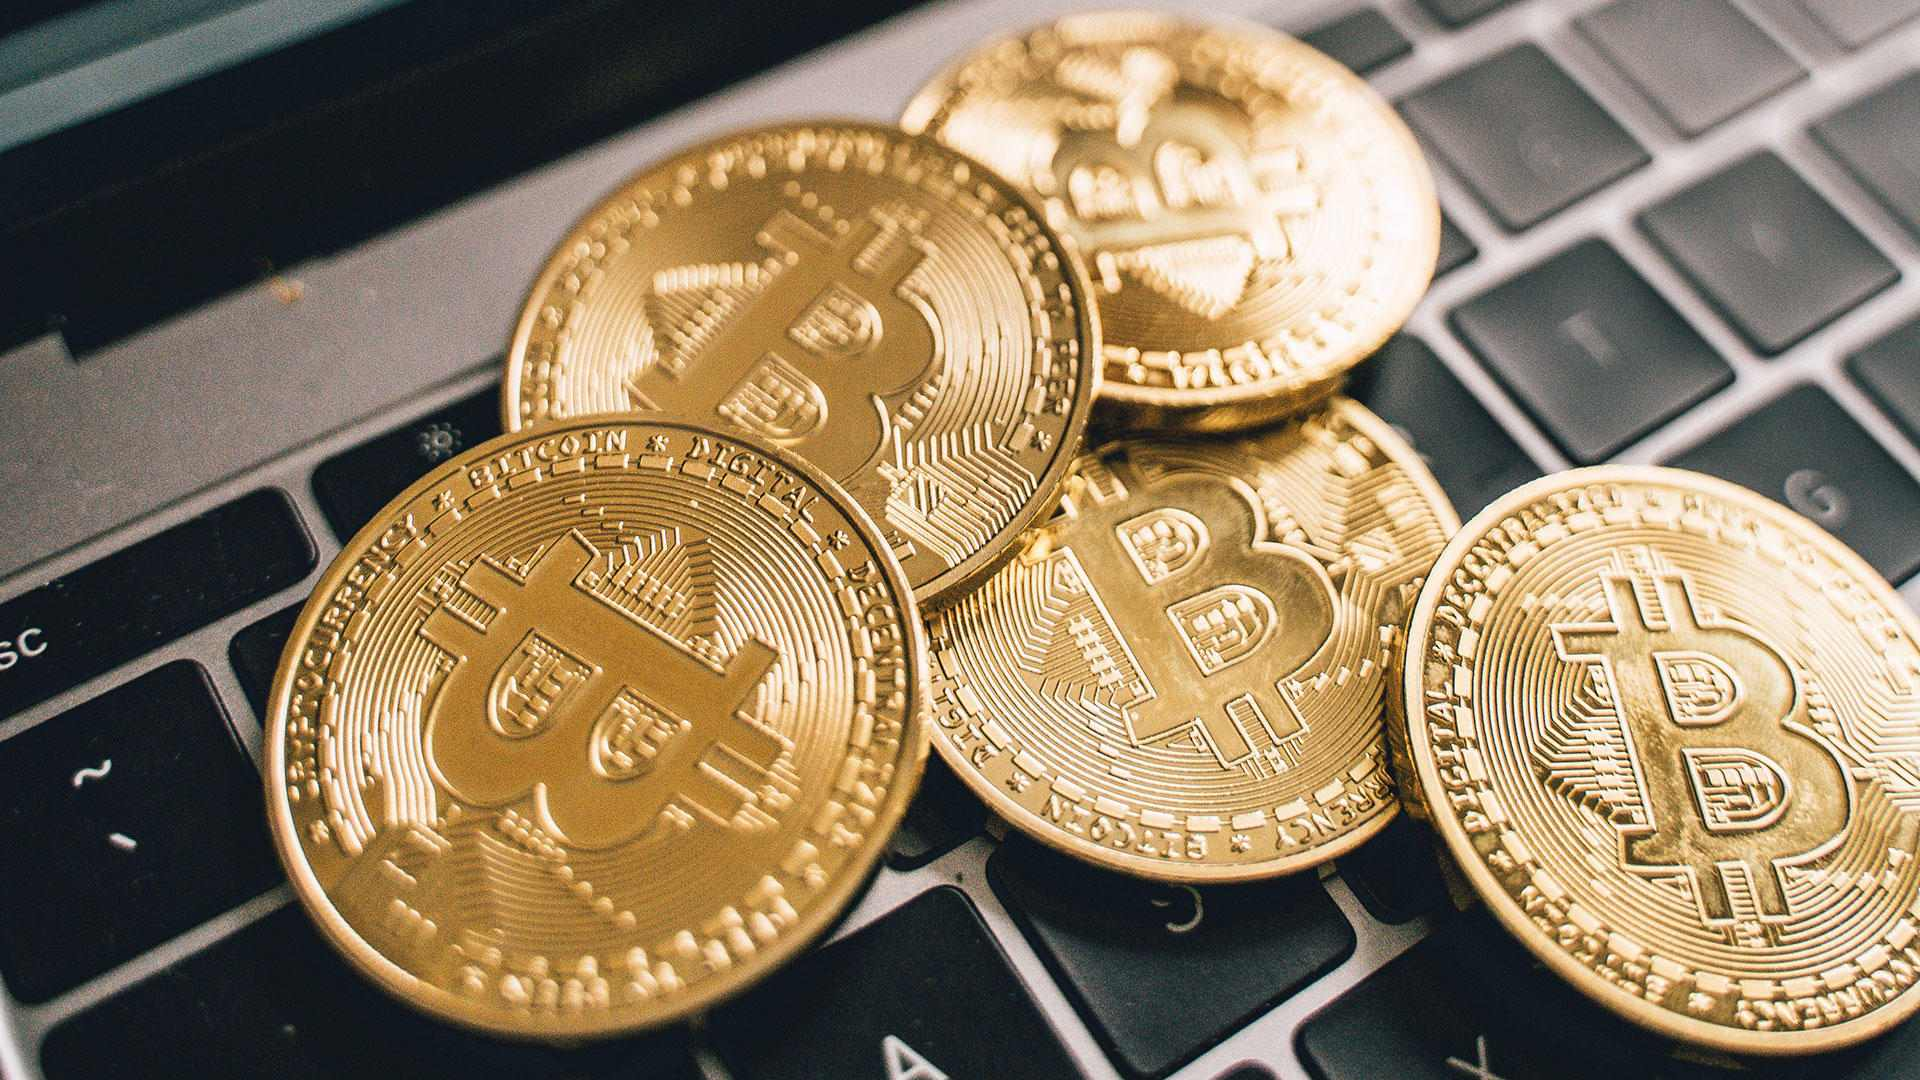 Bitcoin is considered to be the magnetic cryptocurrency. Find out what makes the cryptocurrency so popular with users.